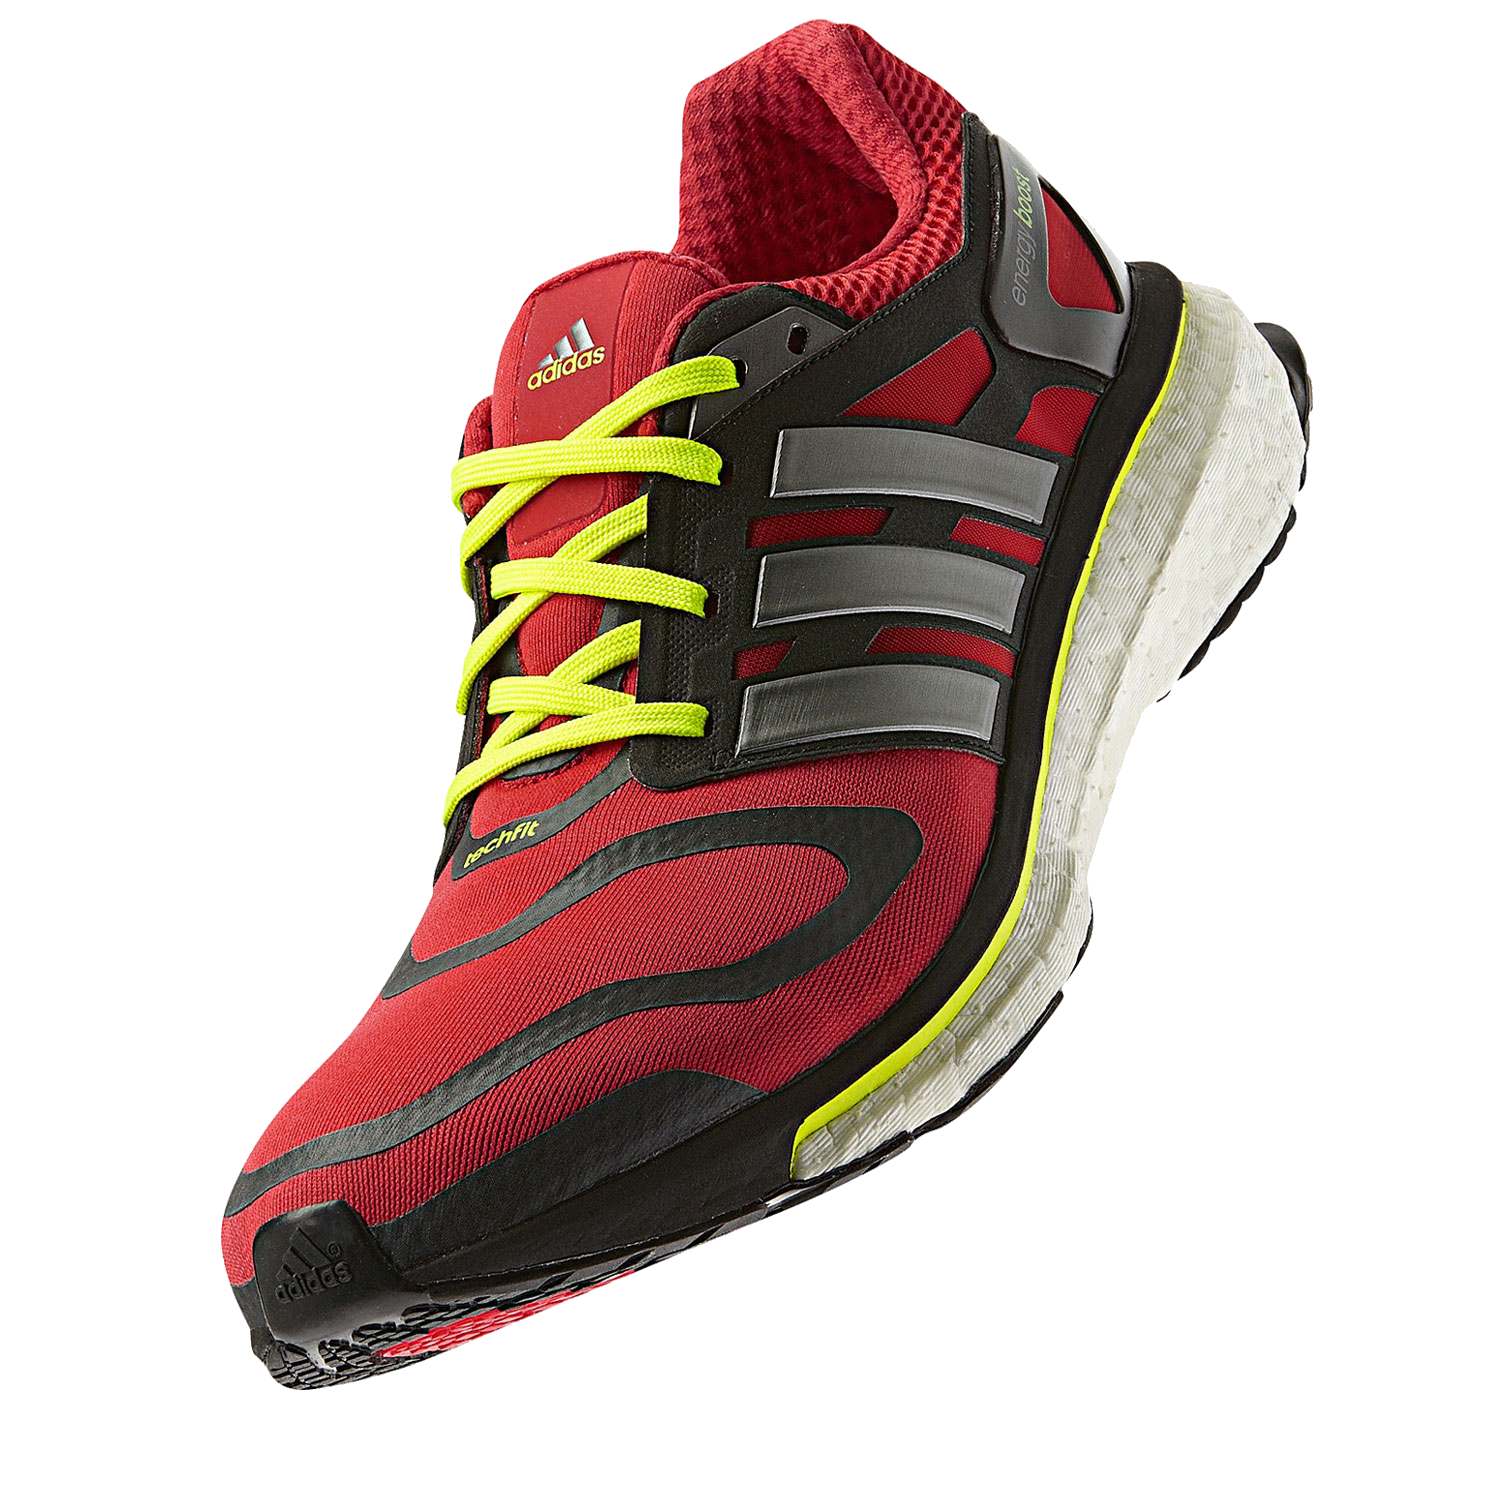 pin Gym-shoes clipart adidas shoe #12 - PNG Gym Shoes